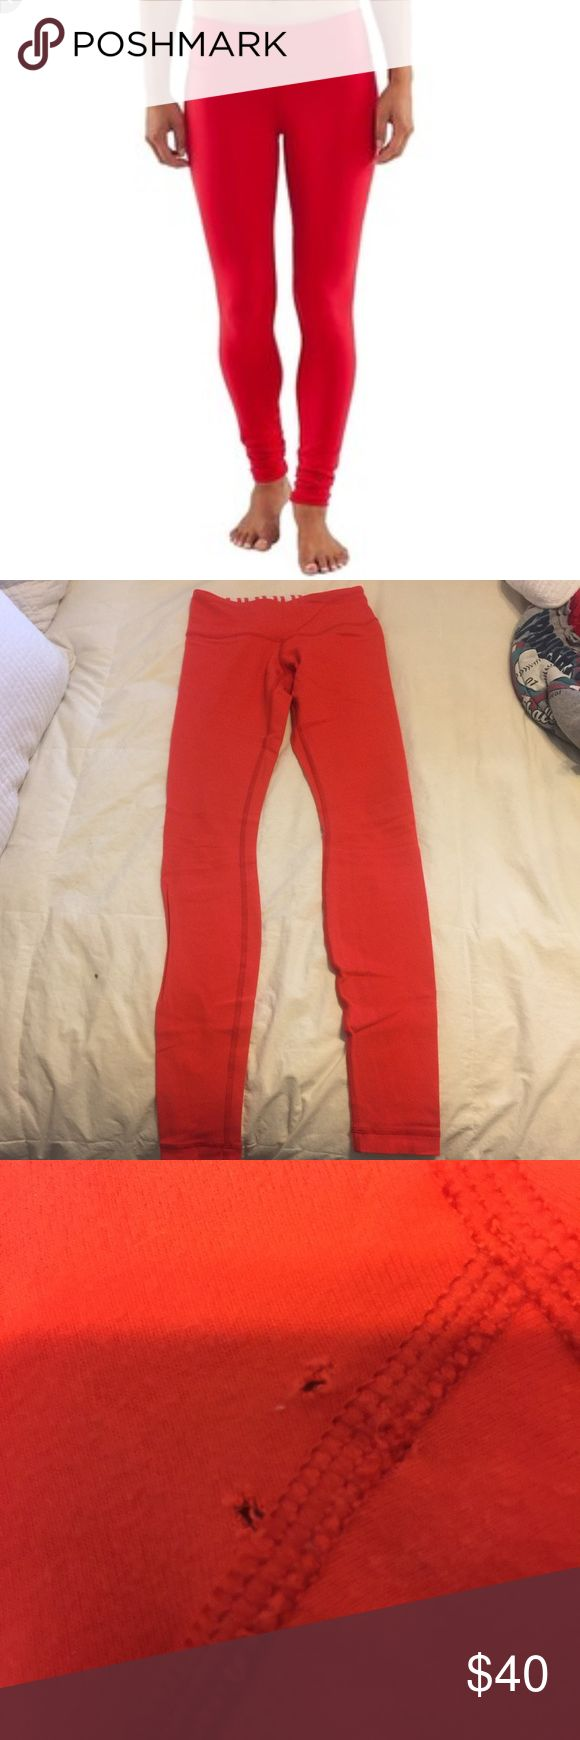 Lululemon leggings-SALE!! Beautiful Lululemon leggings. Med rise. Has two tiny holes in crotch but is priced accordingly. Lululemon might be able to fix these for free. Full length. lululemon athletica Pants Leggings